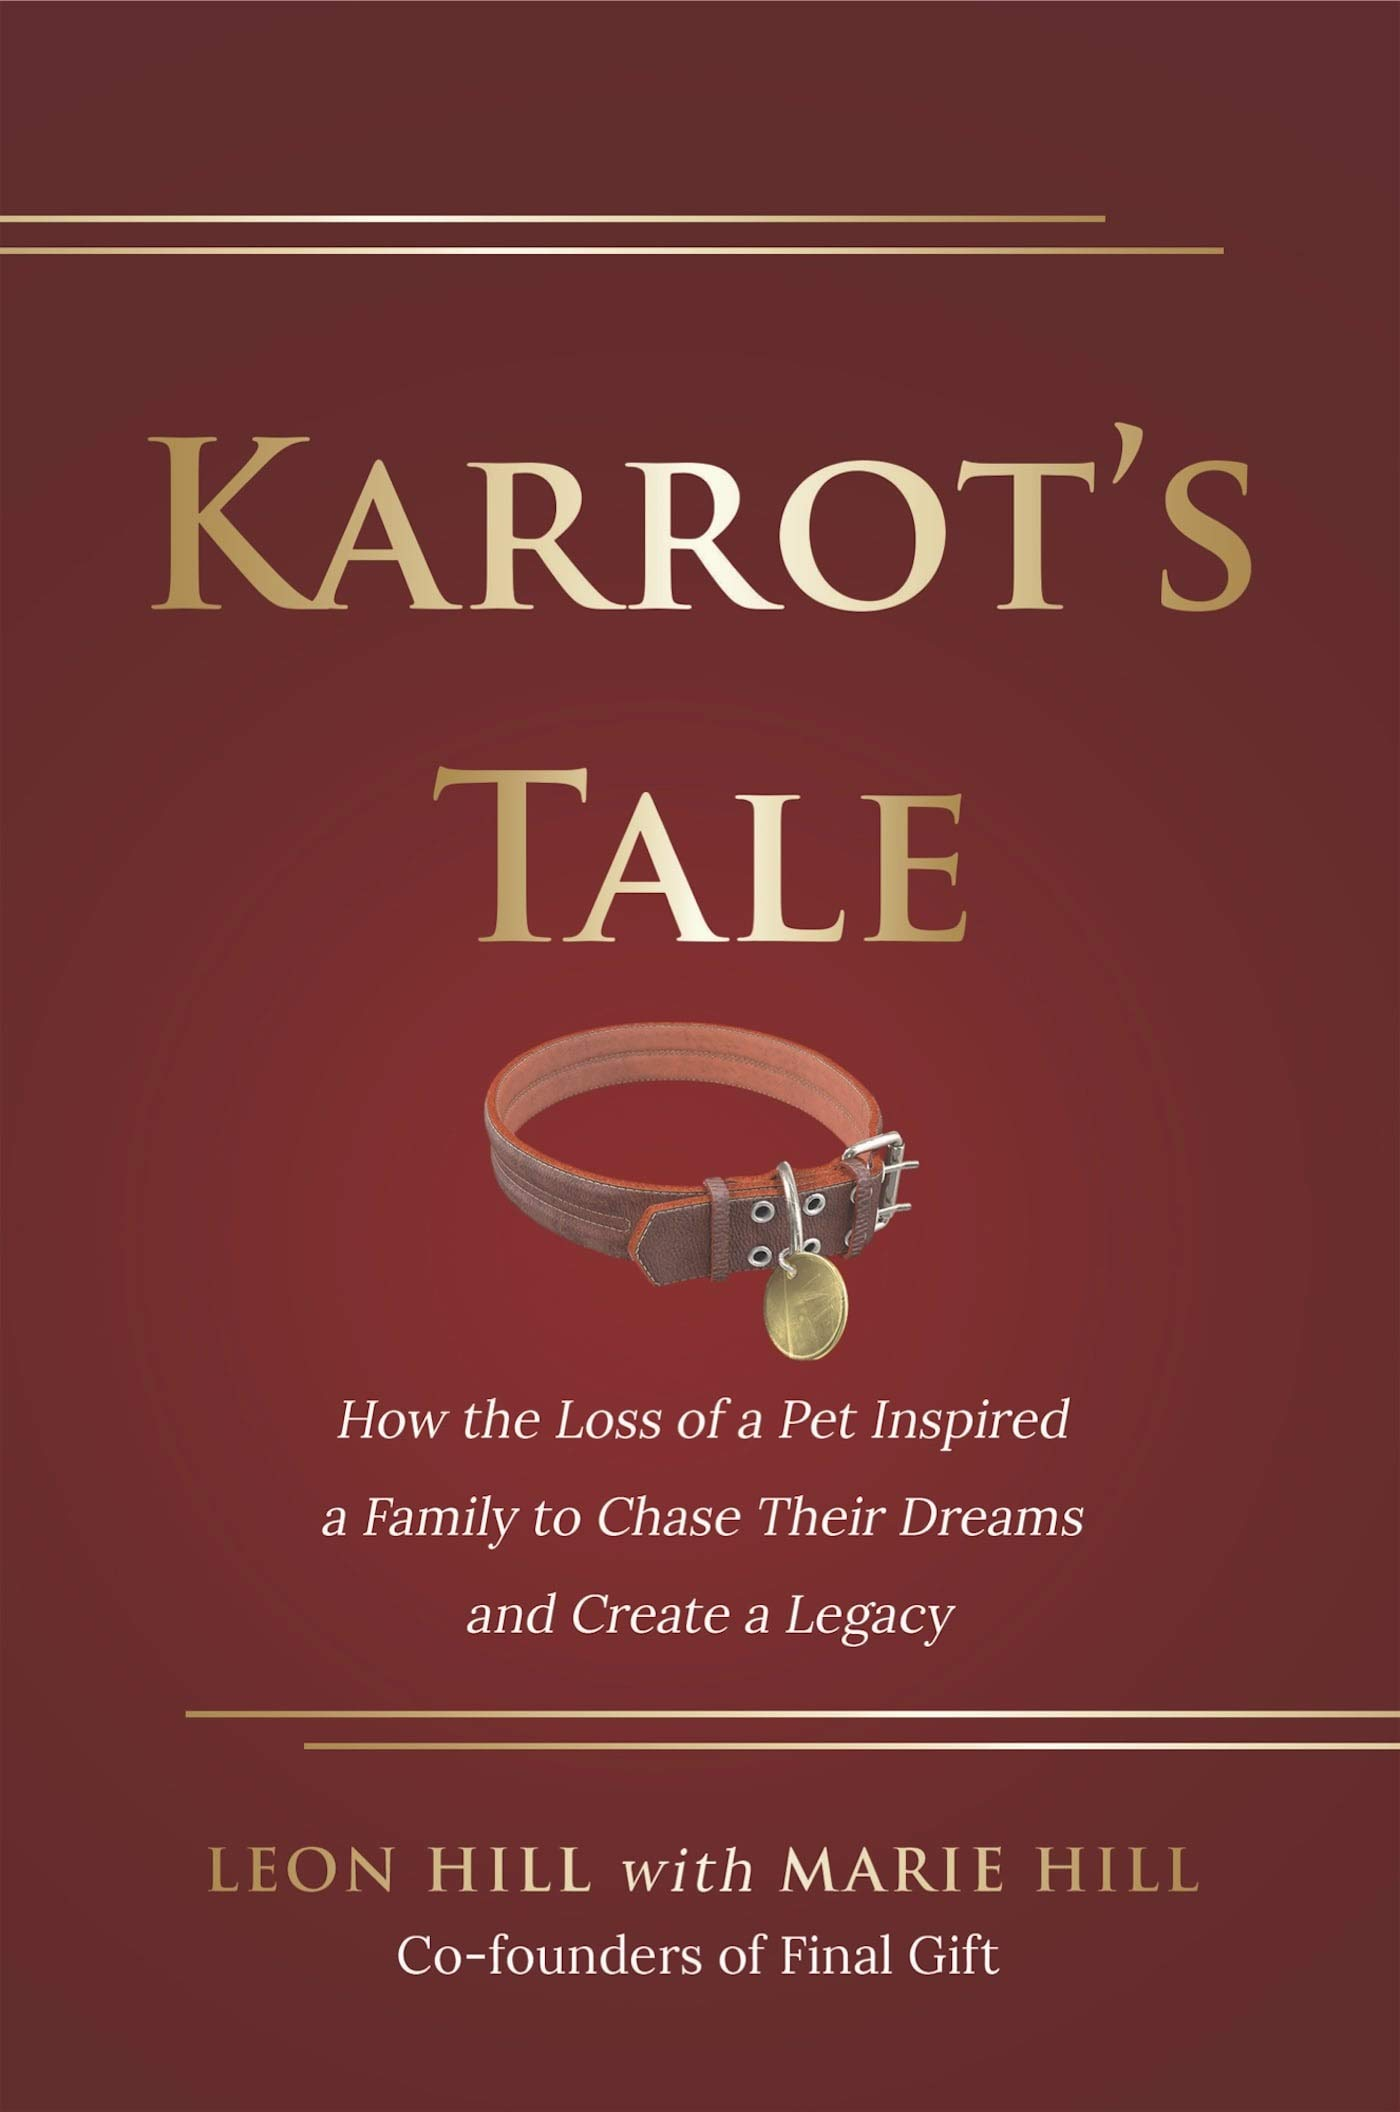 Karrot's Tale: How the Loss of a Pet Inspired a Family to Chase Their Dreams and Create a Legacy